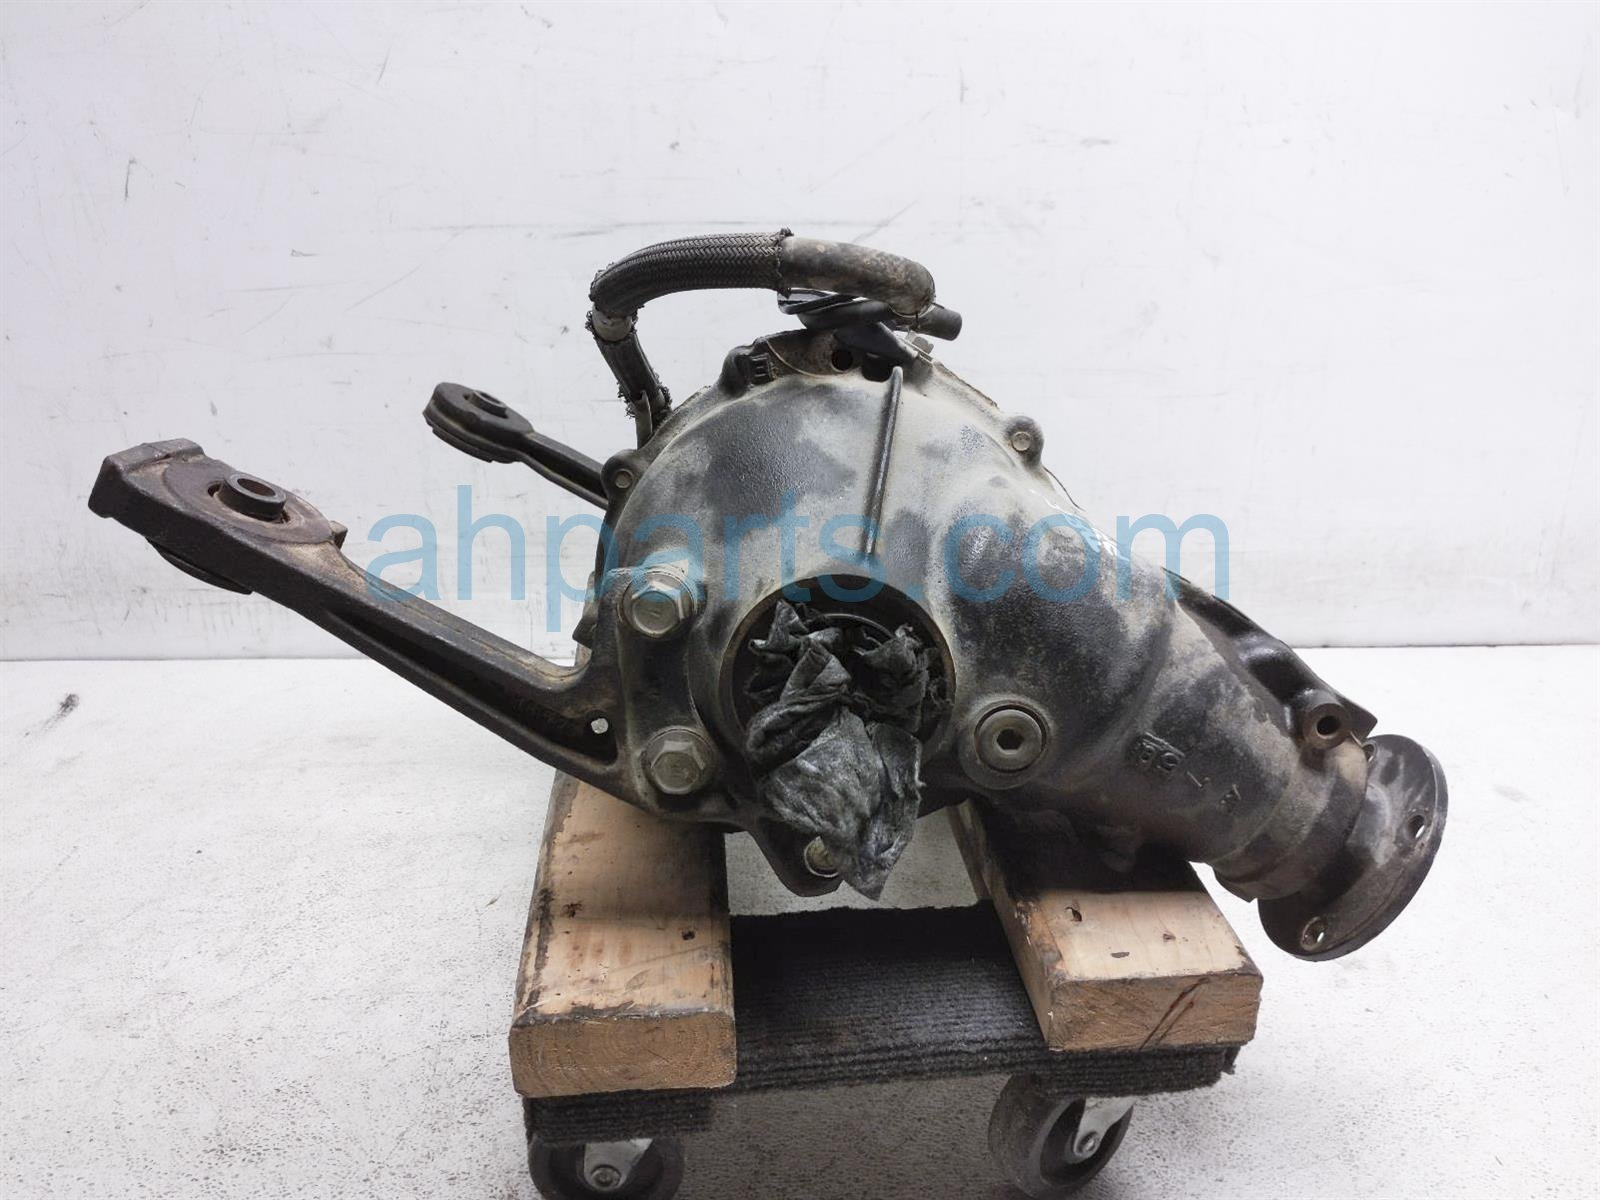 2017 Toyota Tacoma Front Differential Assy 41110 35D71 Replacement